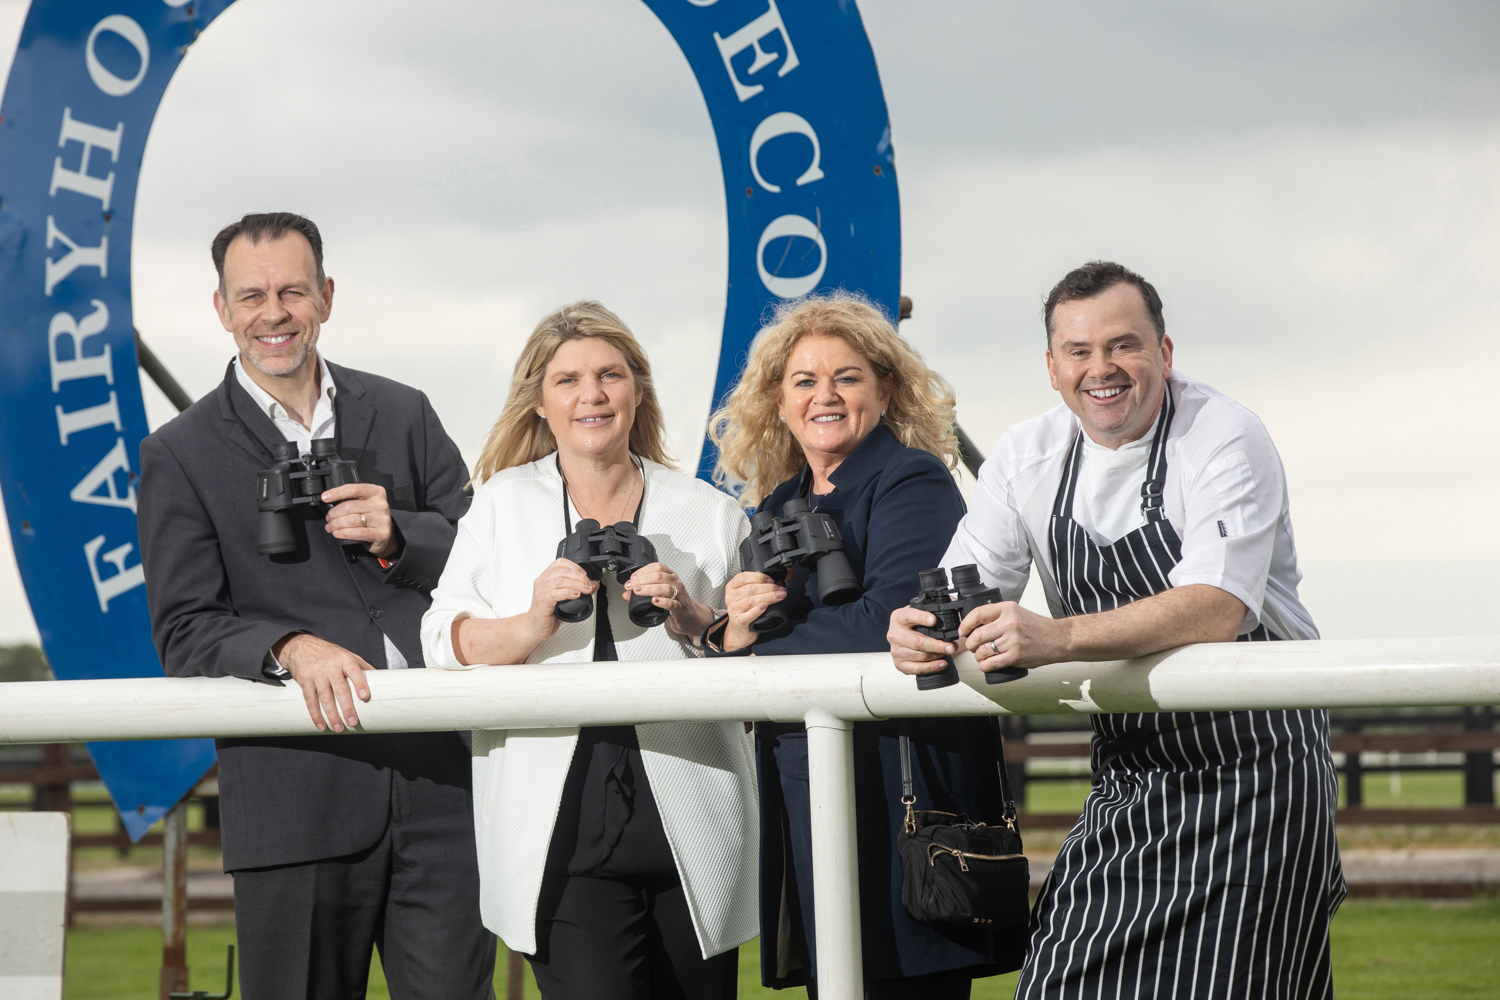 The directors of Fitzers Catering (Left to right) Barry Storey (Managing Director), Sharon Fitzpatrick (CEO), Paula Fitzpatrick (Director) and Lenny Fearon (Director and Group Executive Head Chef).  For further information please contact  Mari O'Leary  016789888 marioleary@olearypr.ie